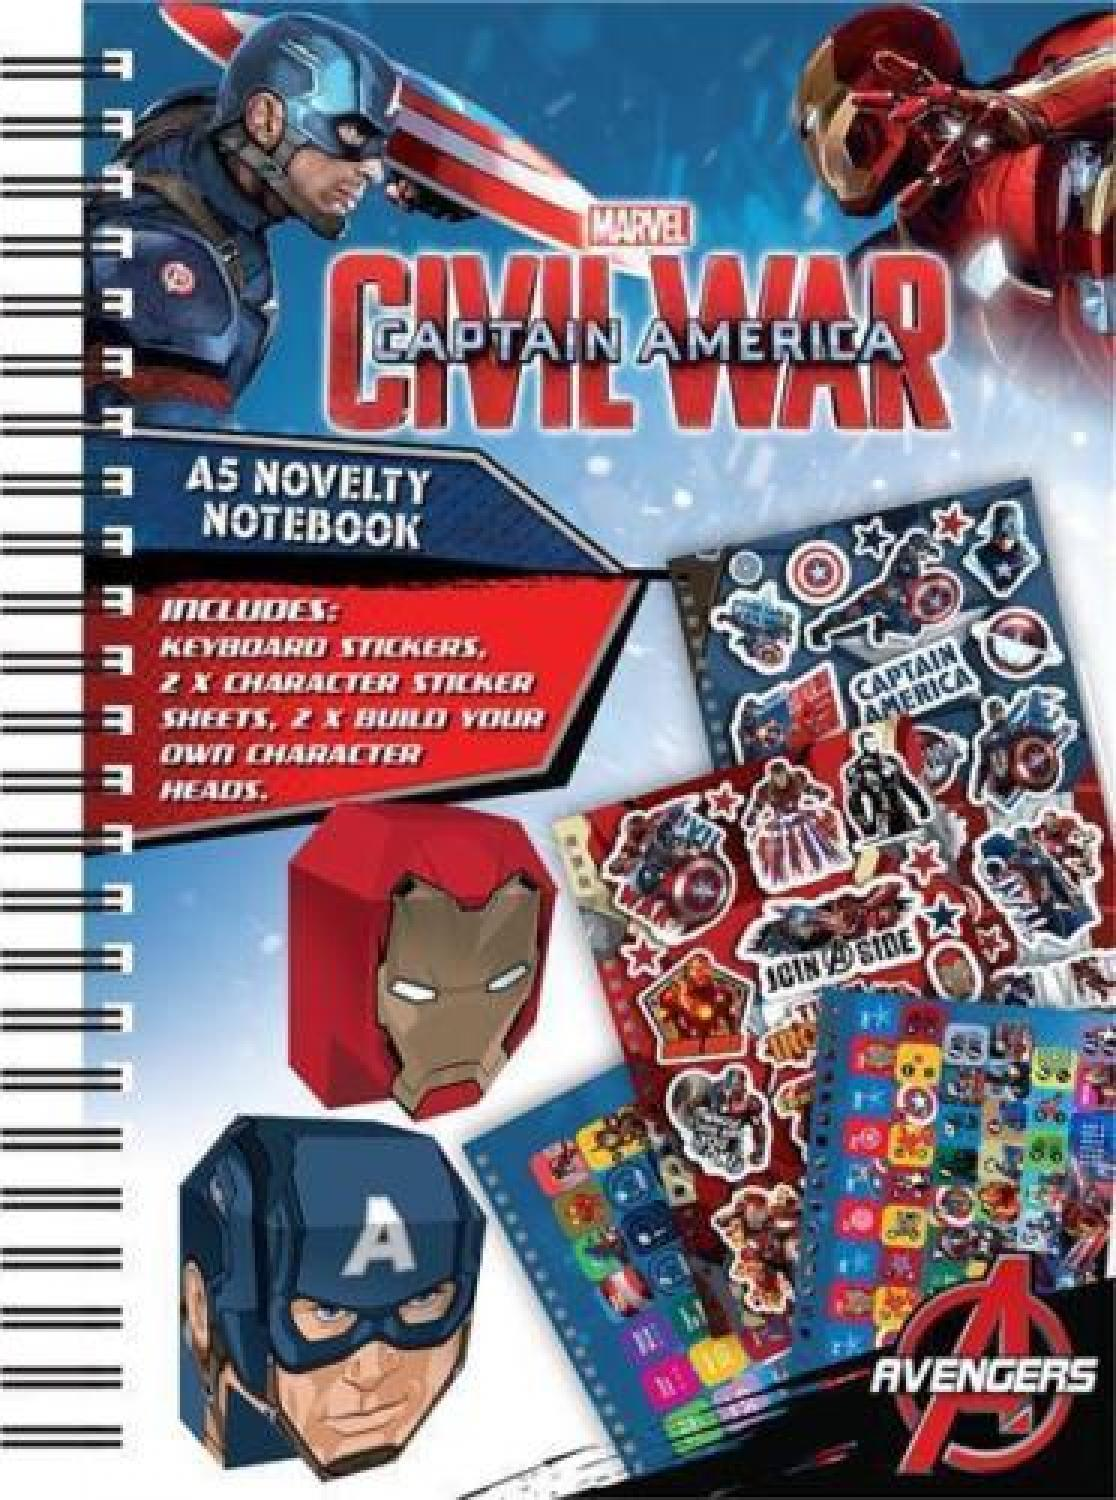 Captain America Civil War A5 Novelty Notebook